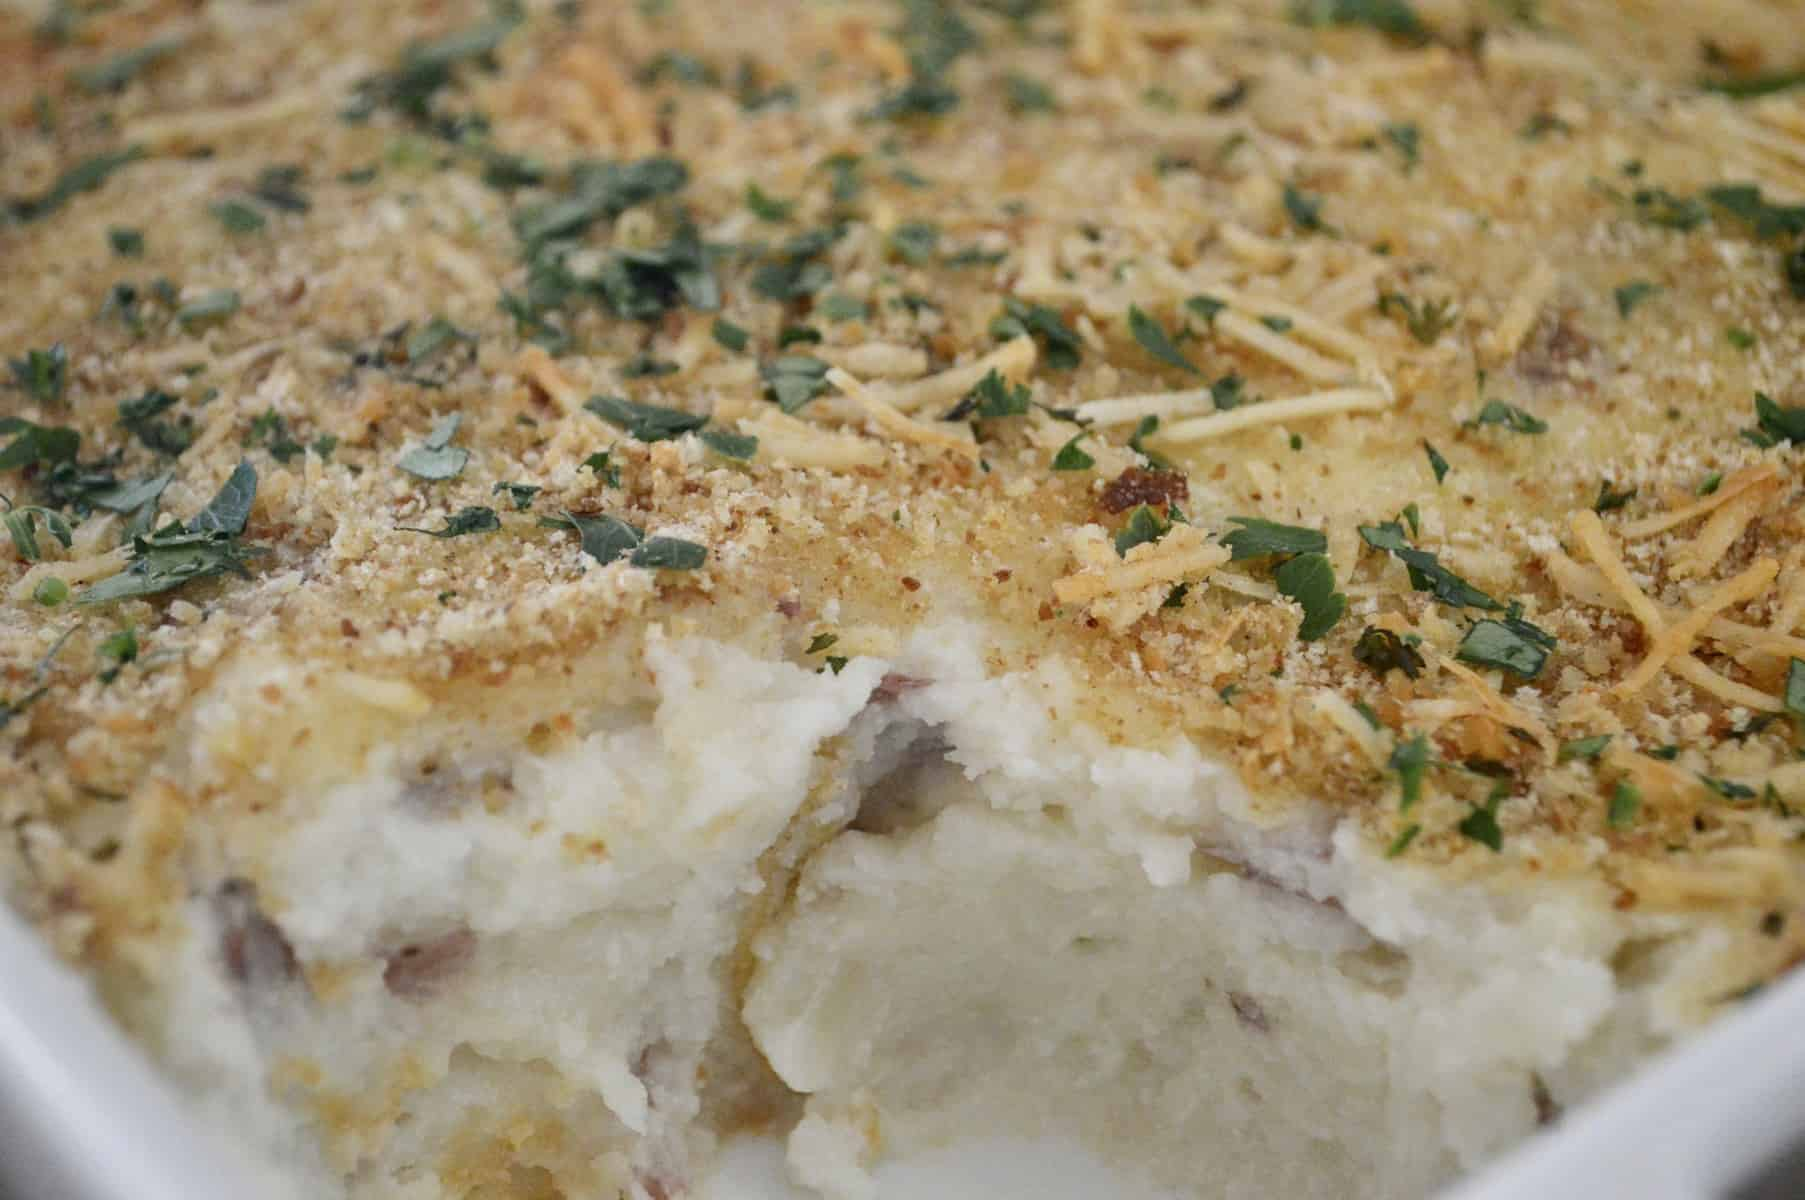 Mashed potato casserole with parmesan and breadcrumb topping